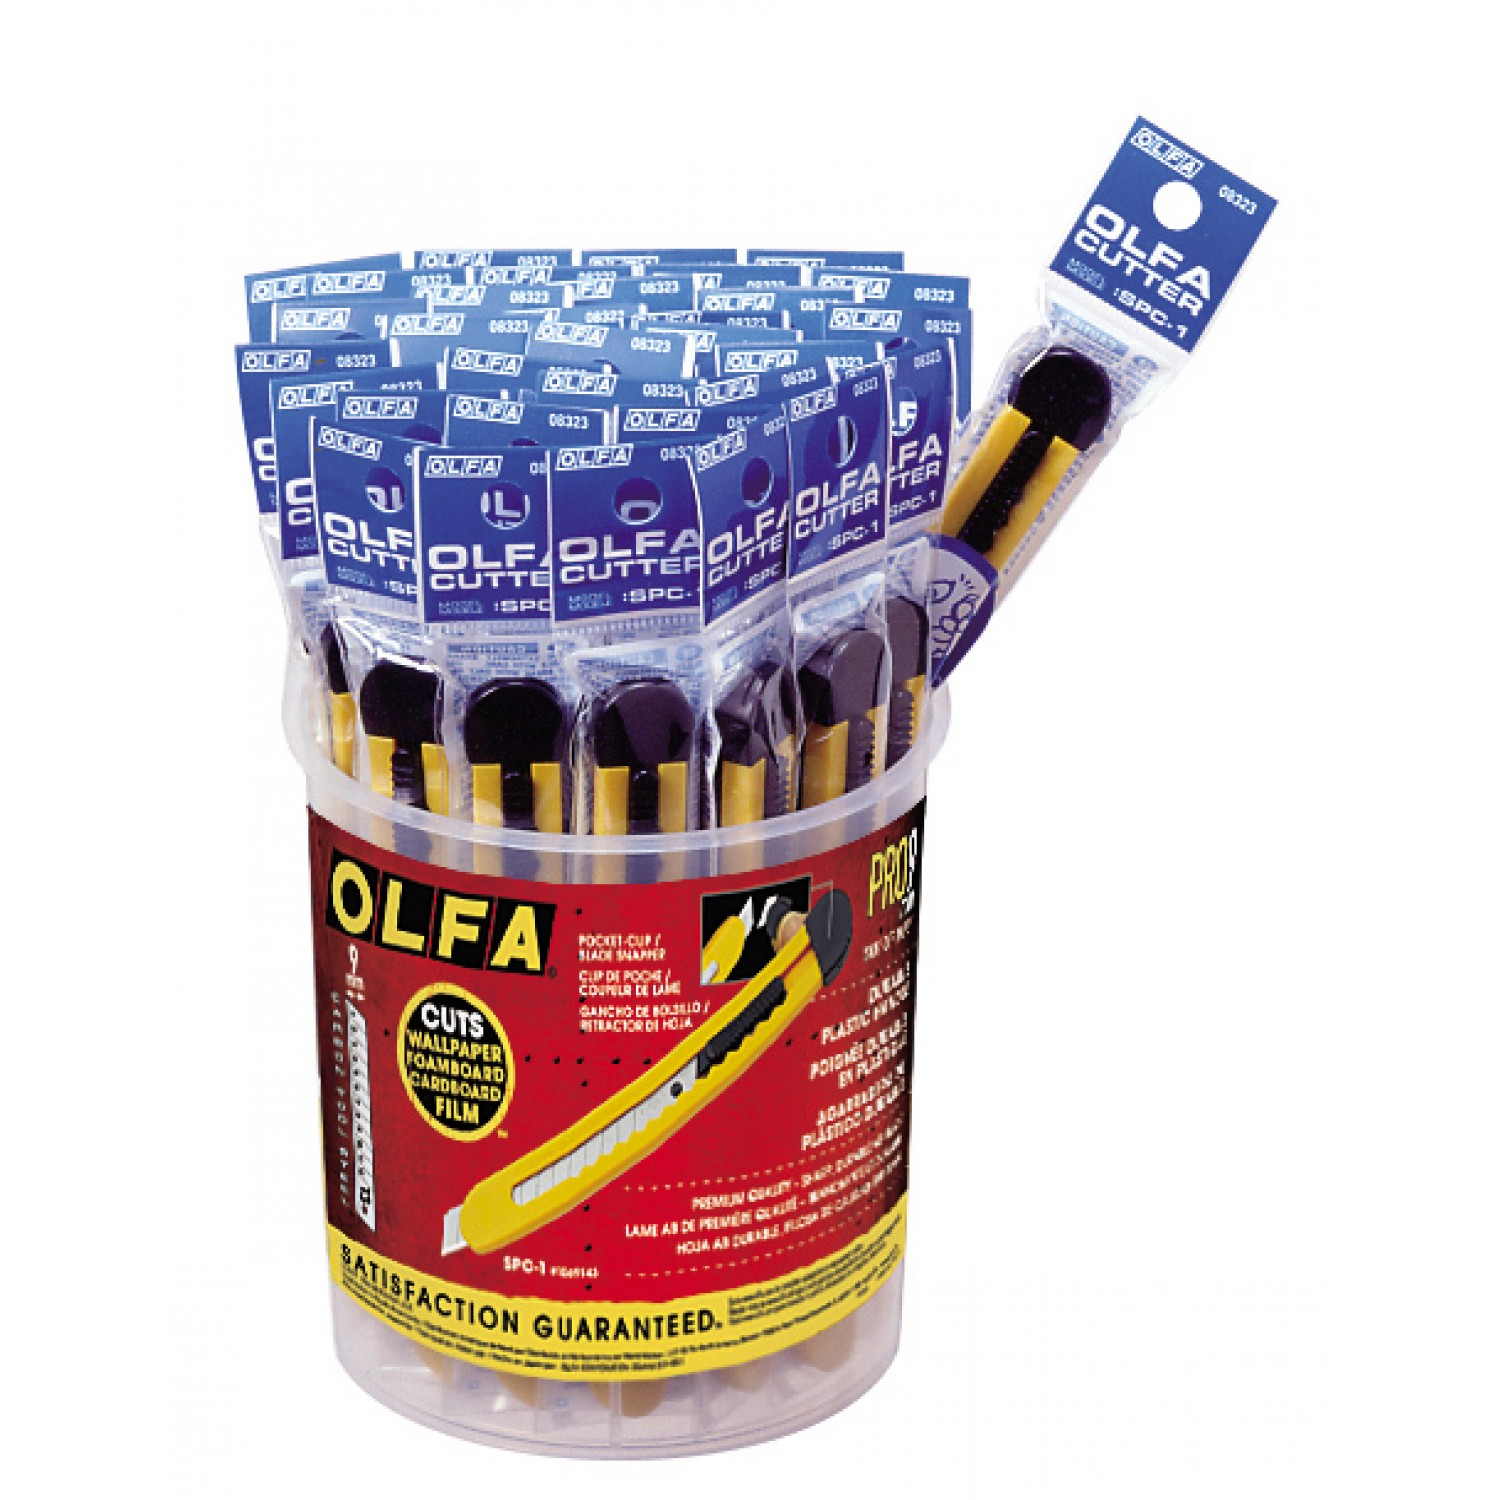 Olfa SPC-1/40 Plastic Standard-Duty Cutters in bucket display